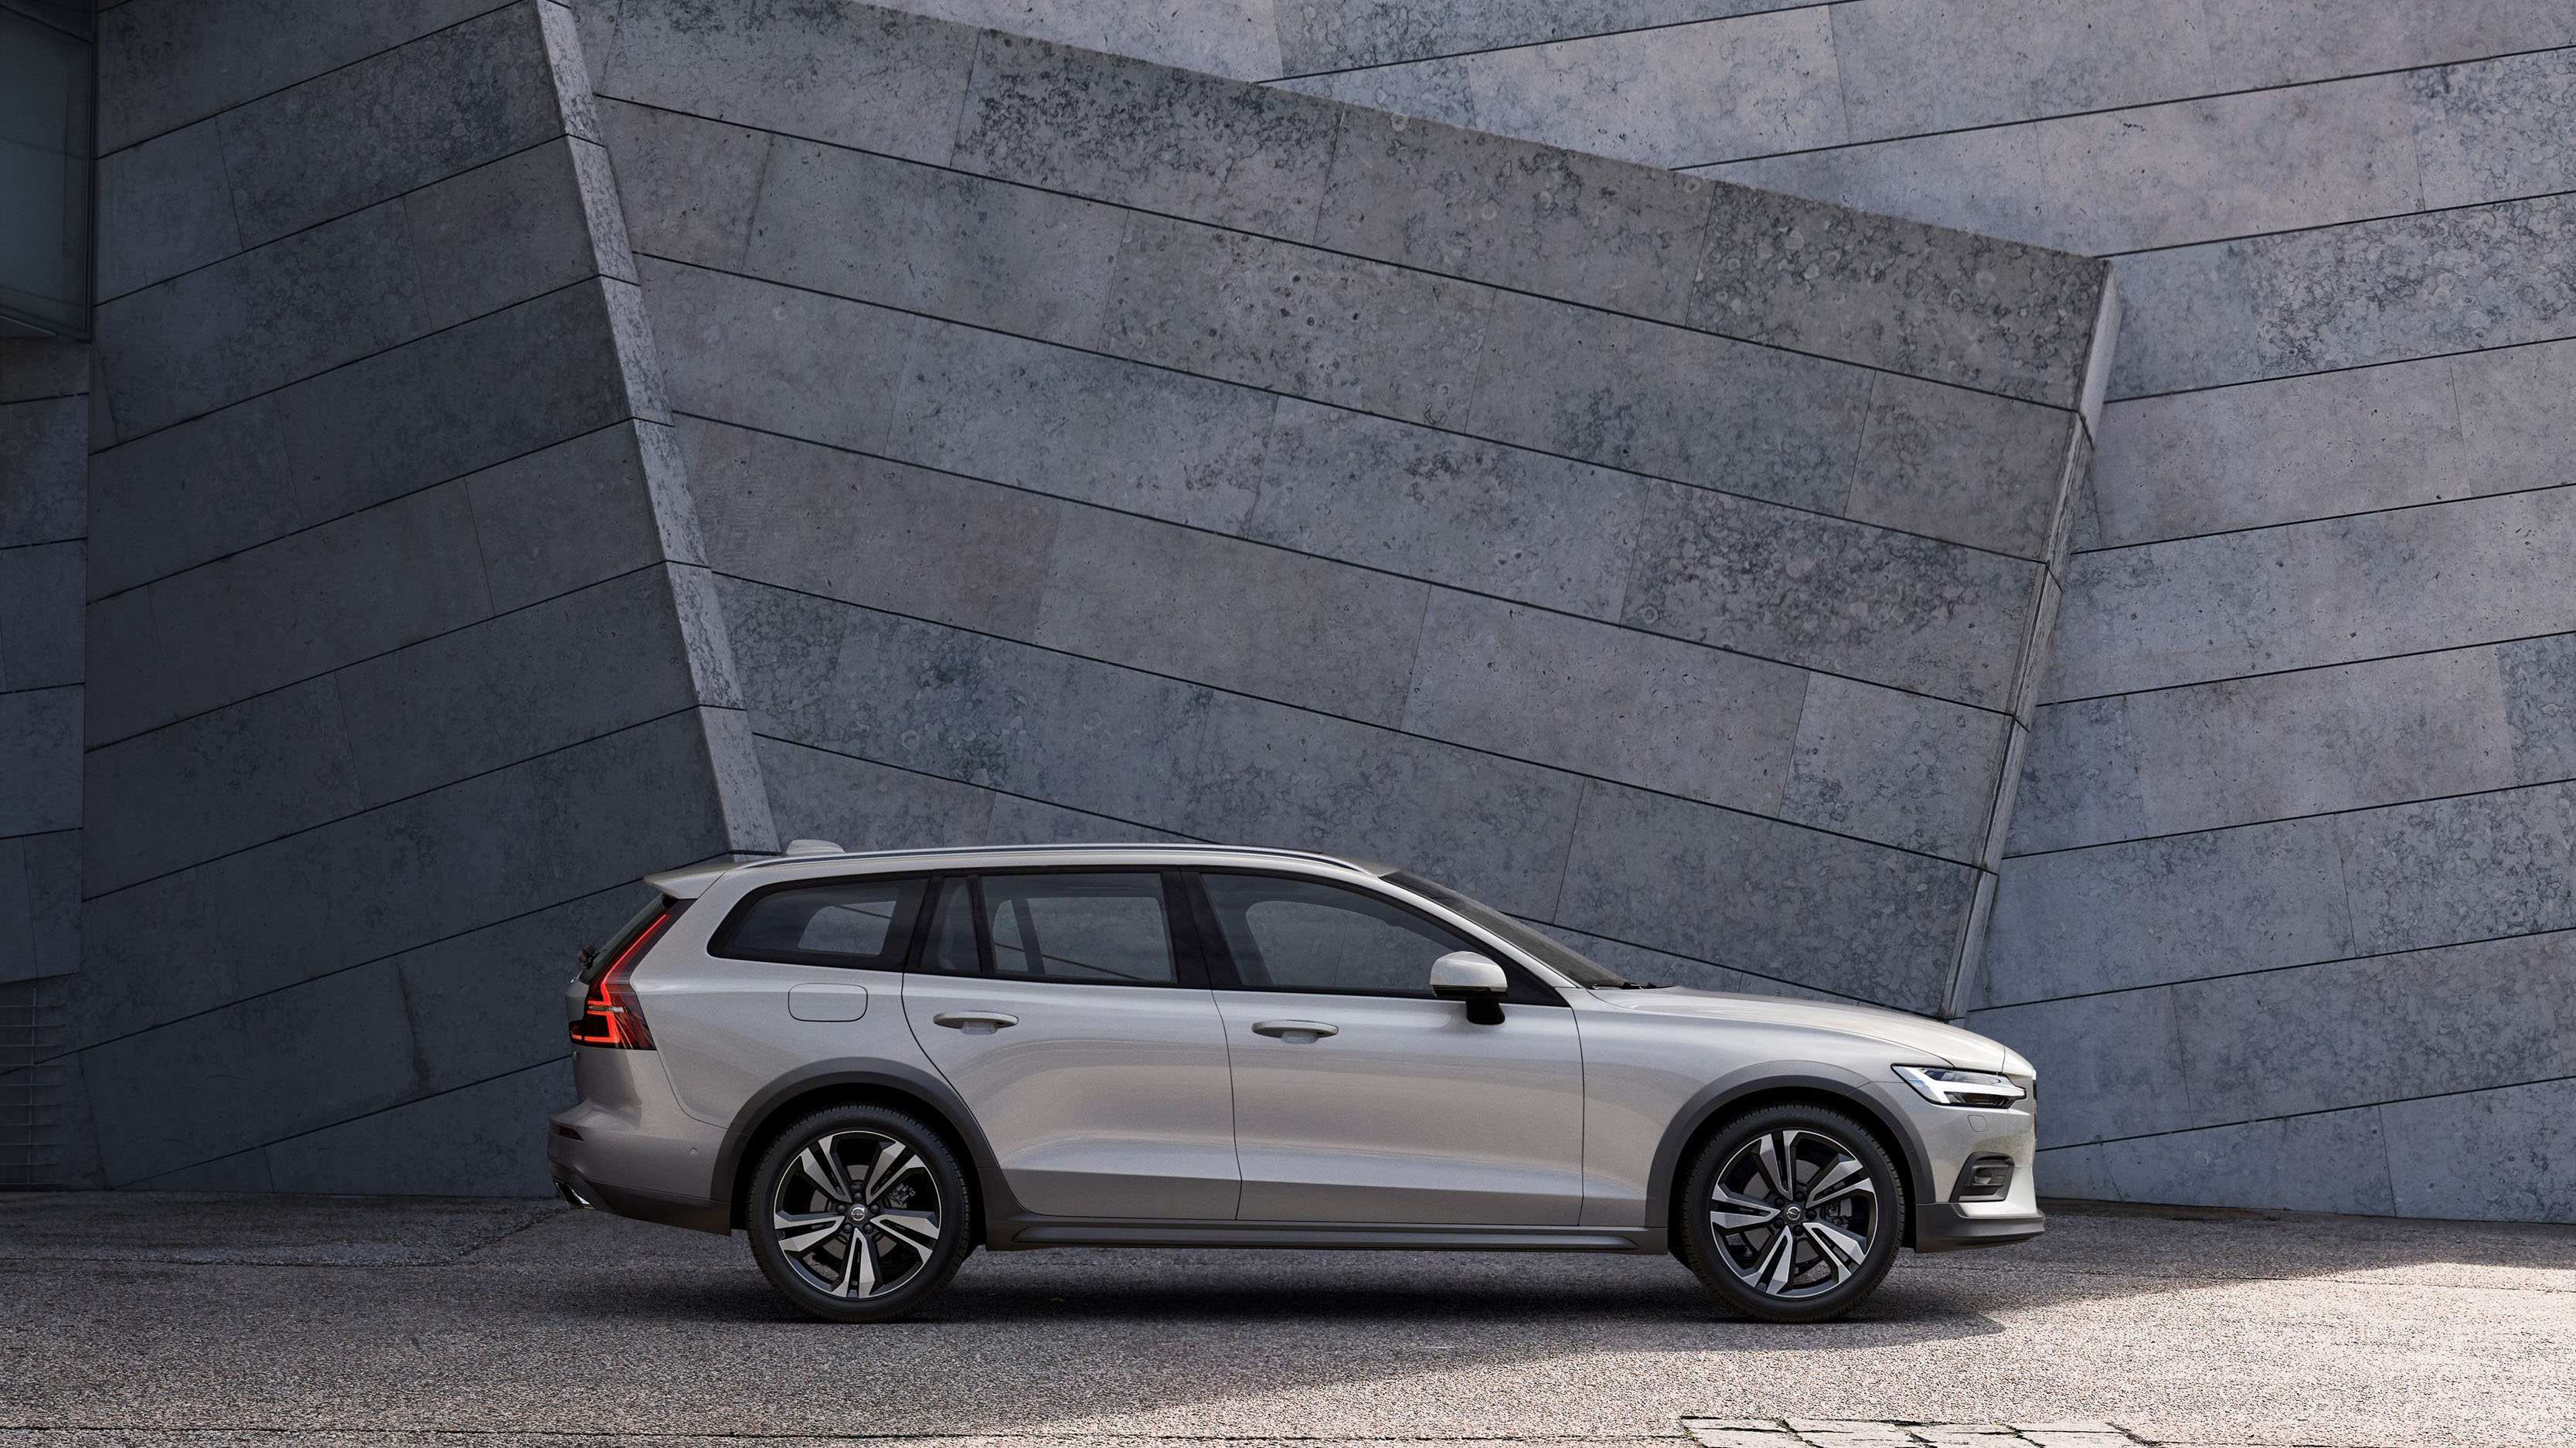 77 Concept of Volvo V60 Cross Country 2020 Photos by Volvo V60 Cross Country 2020